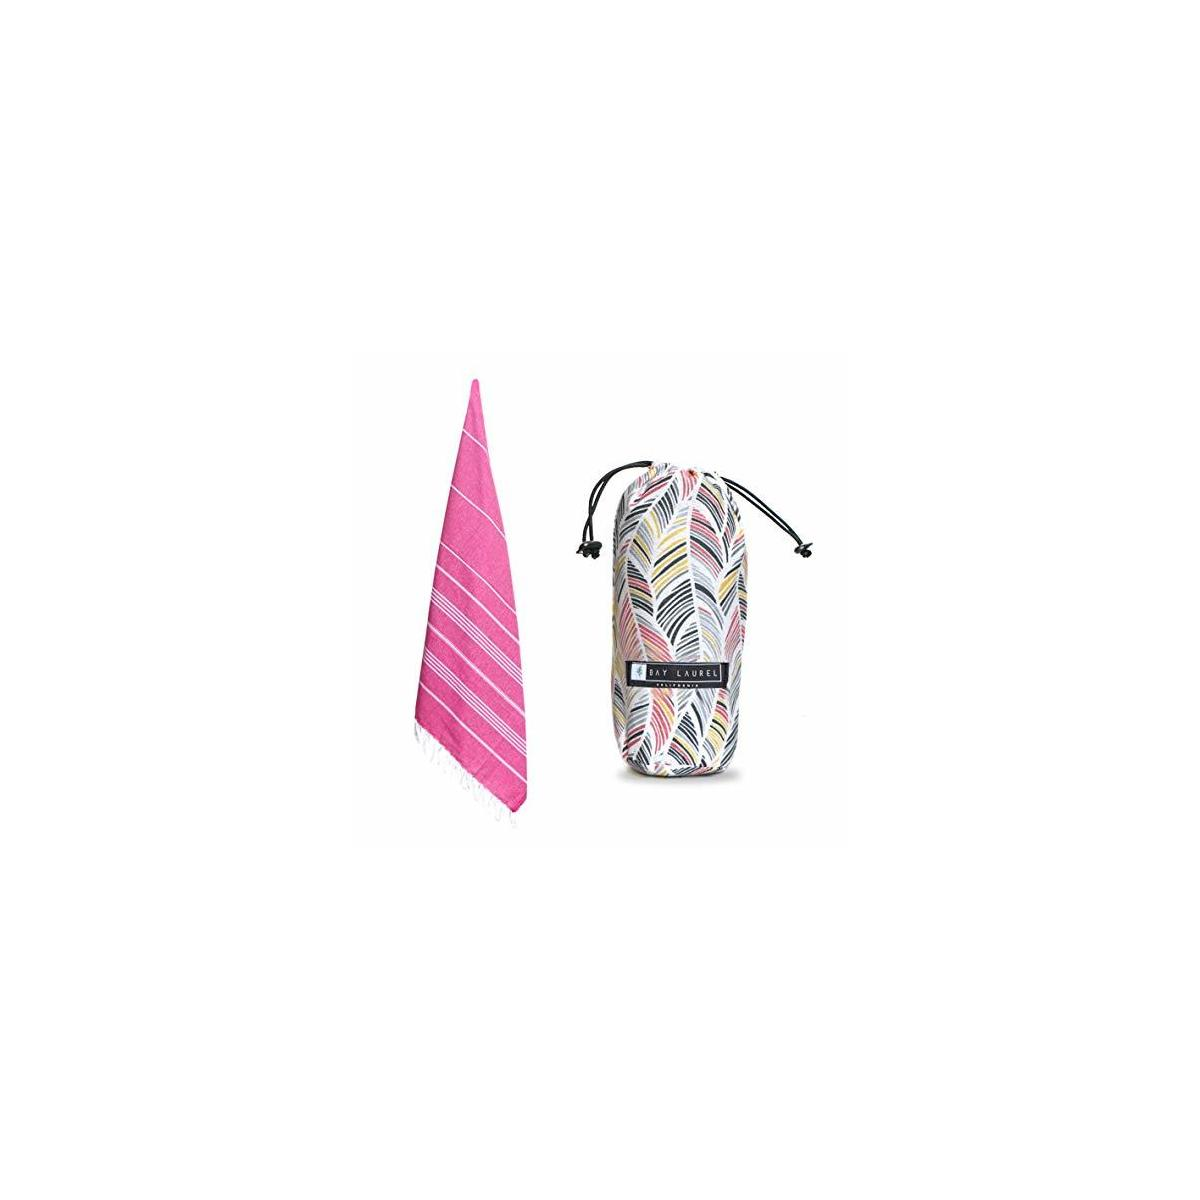 Beach & Bath Towel with Travel Bag / 100% Natural Cotton  / Eco-friendly Towel Manufactured with Hundreds Year Tradition-PINK